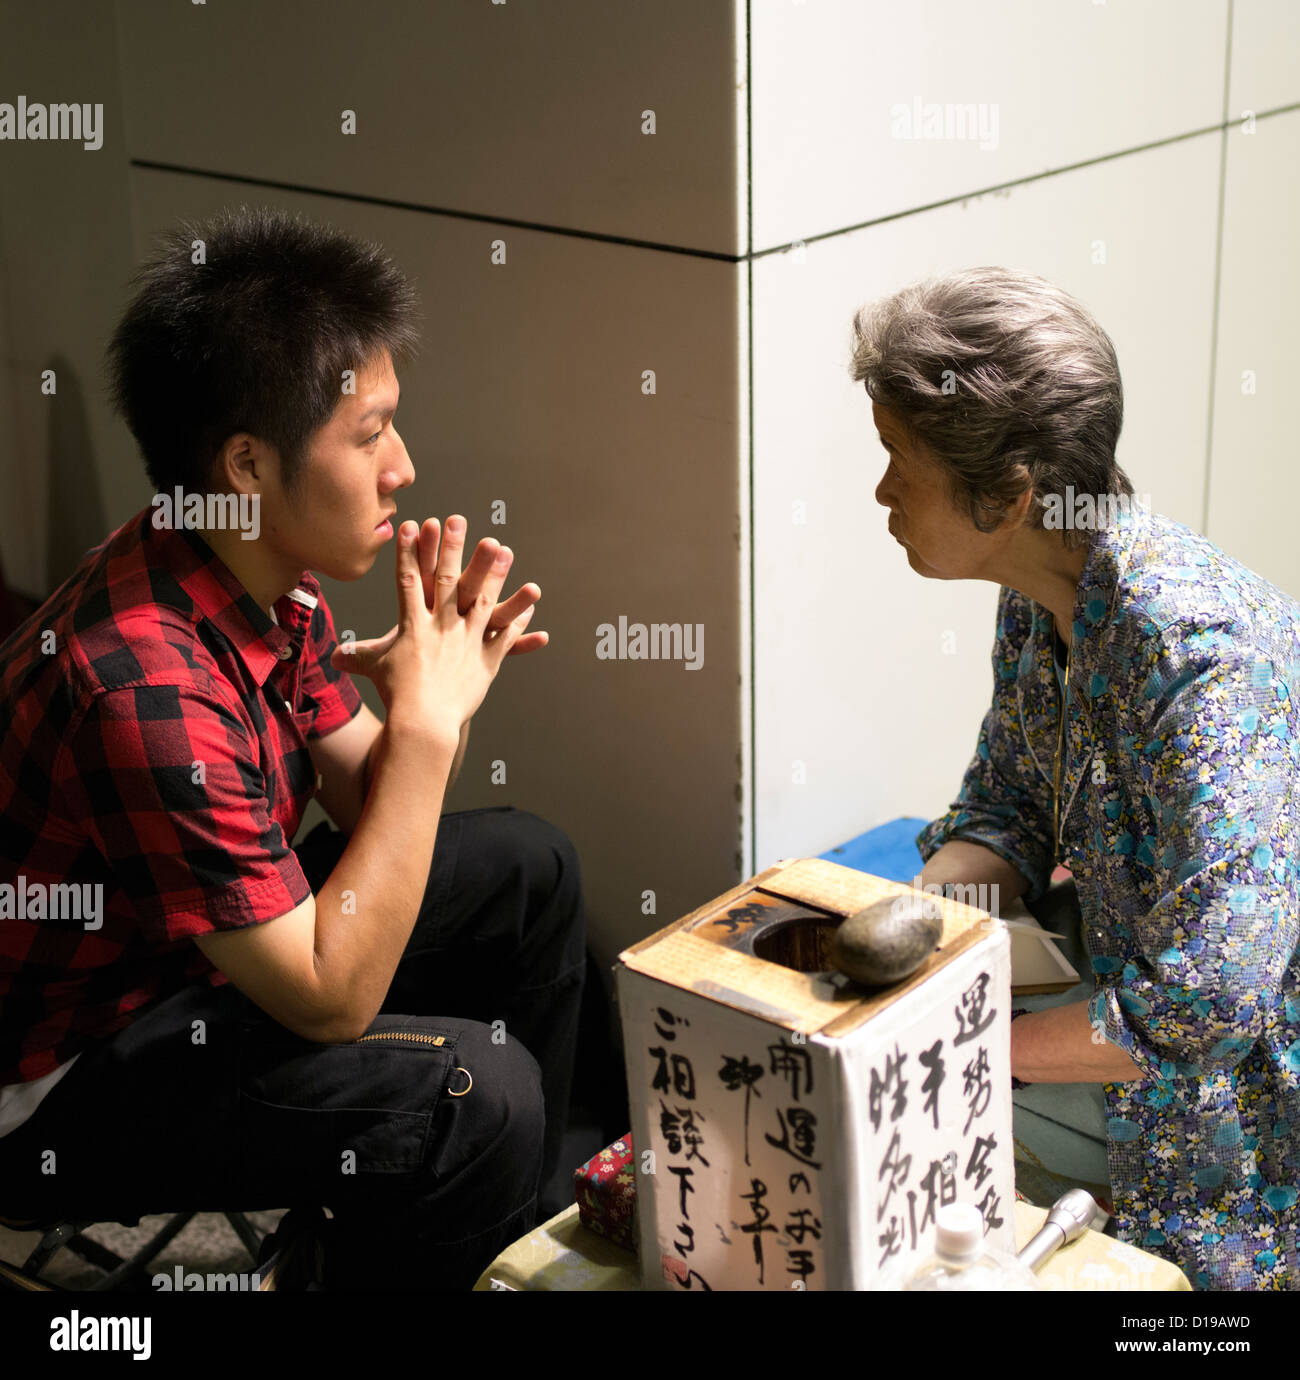 Elderly Japanese fortune teller (R) talks to young Japanese man (L) on the street in Shinjuku, Tokyo. - Stock Image